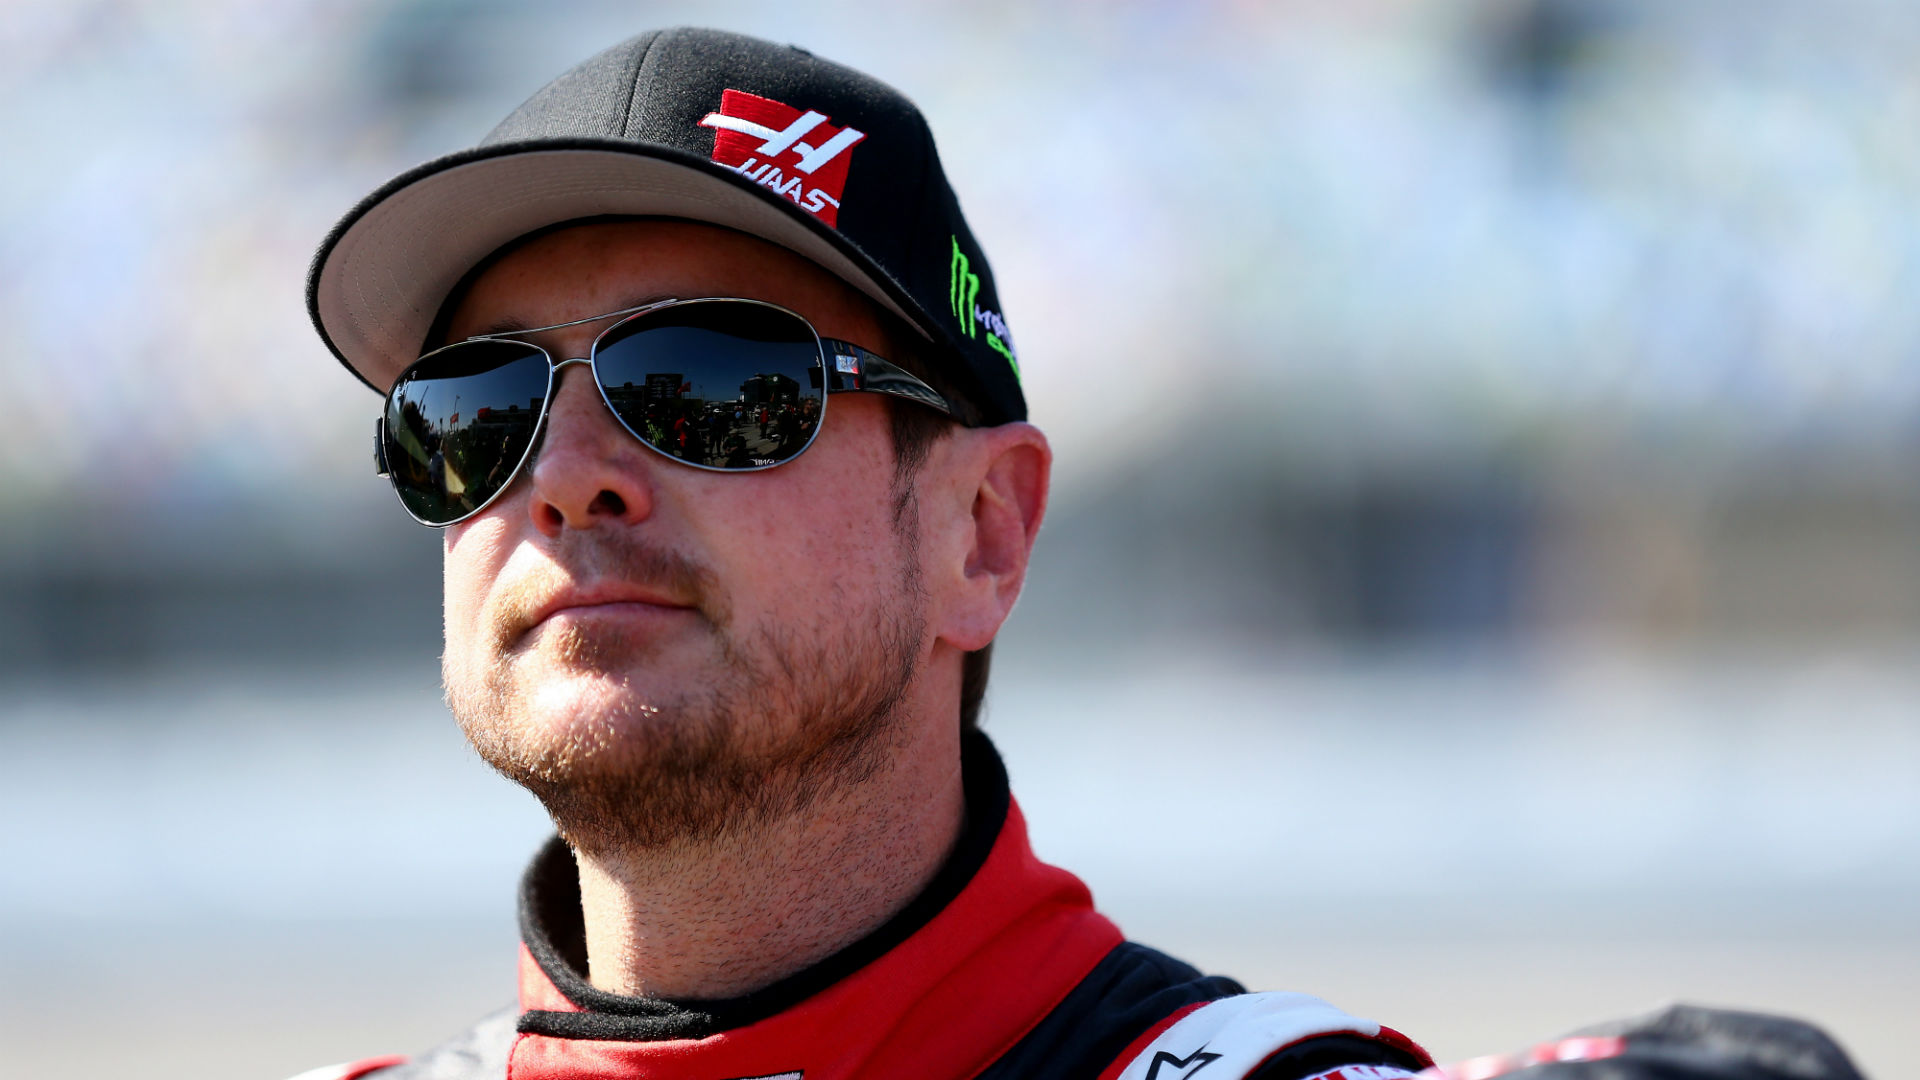 Judge upholds protection order against Kurt Busch